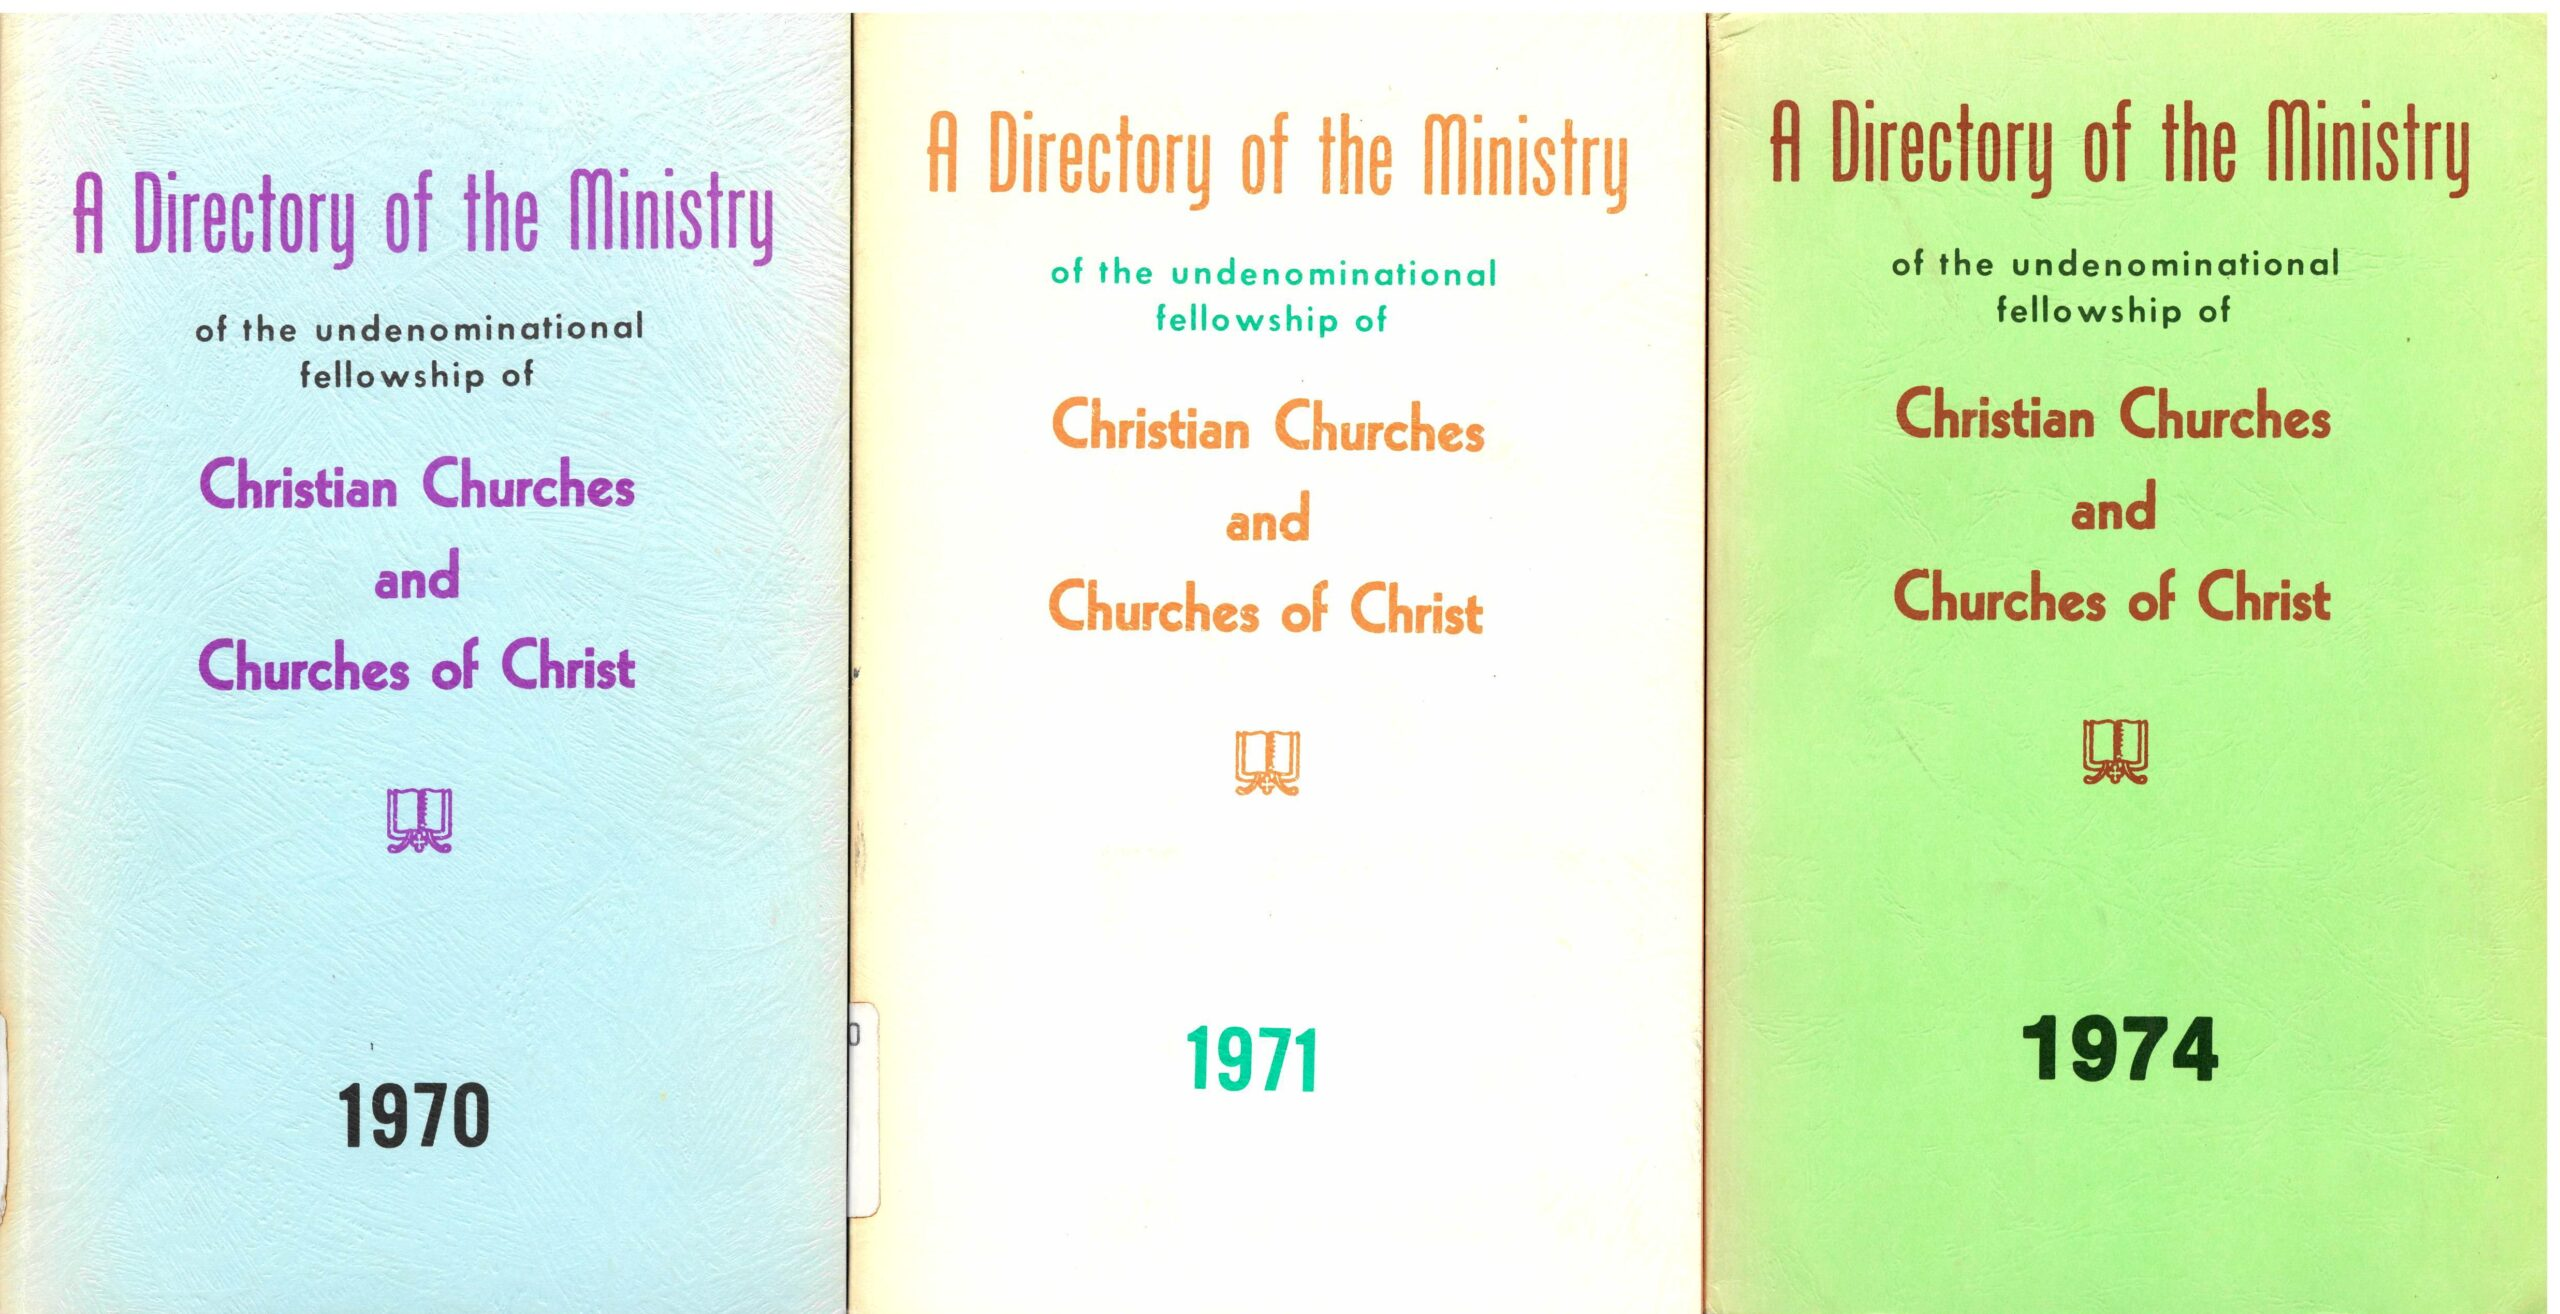 A Directory of the Ministry of the Undenominational Fellowship of Christian Churches and Churches of Christ.